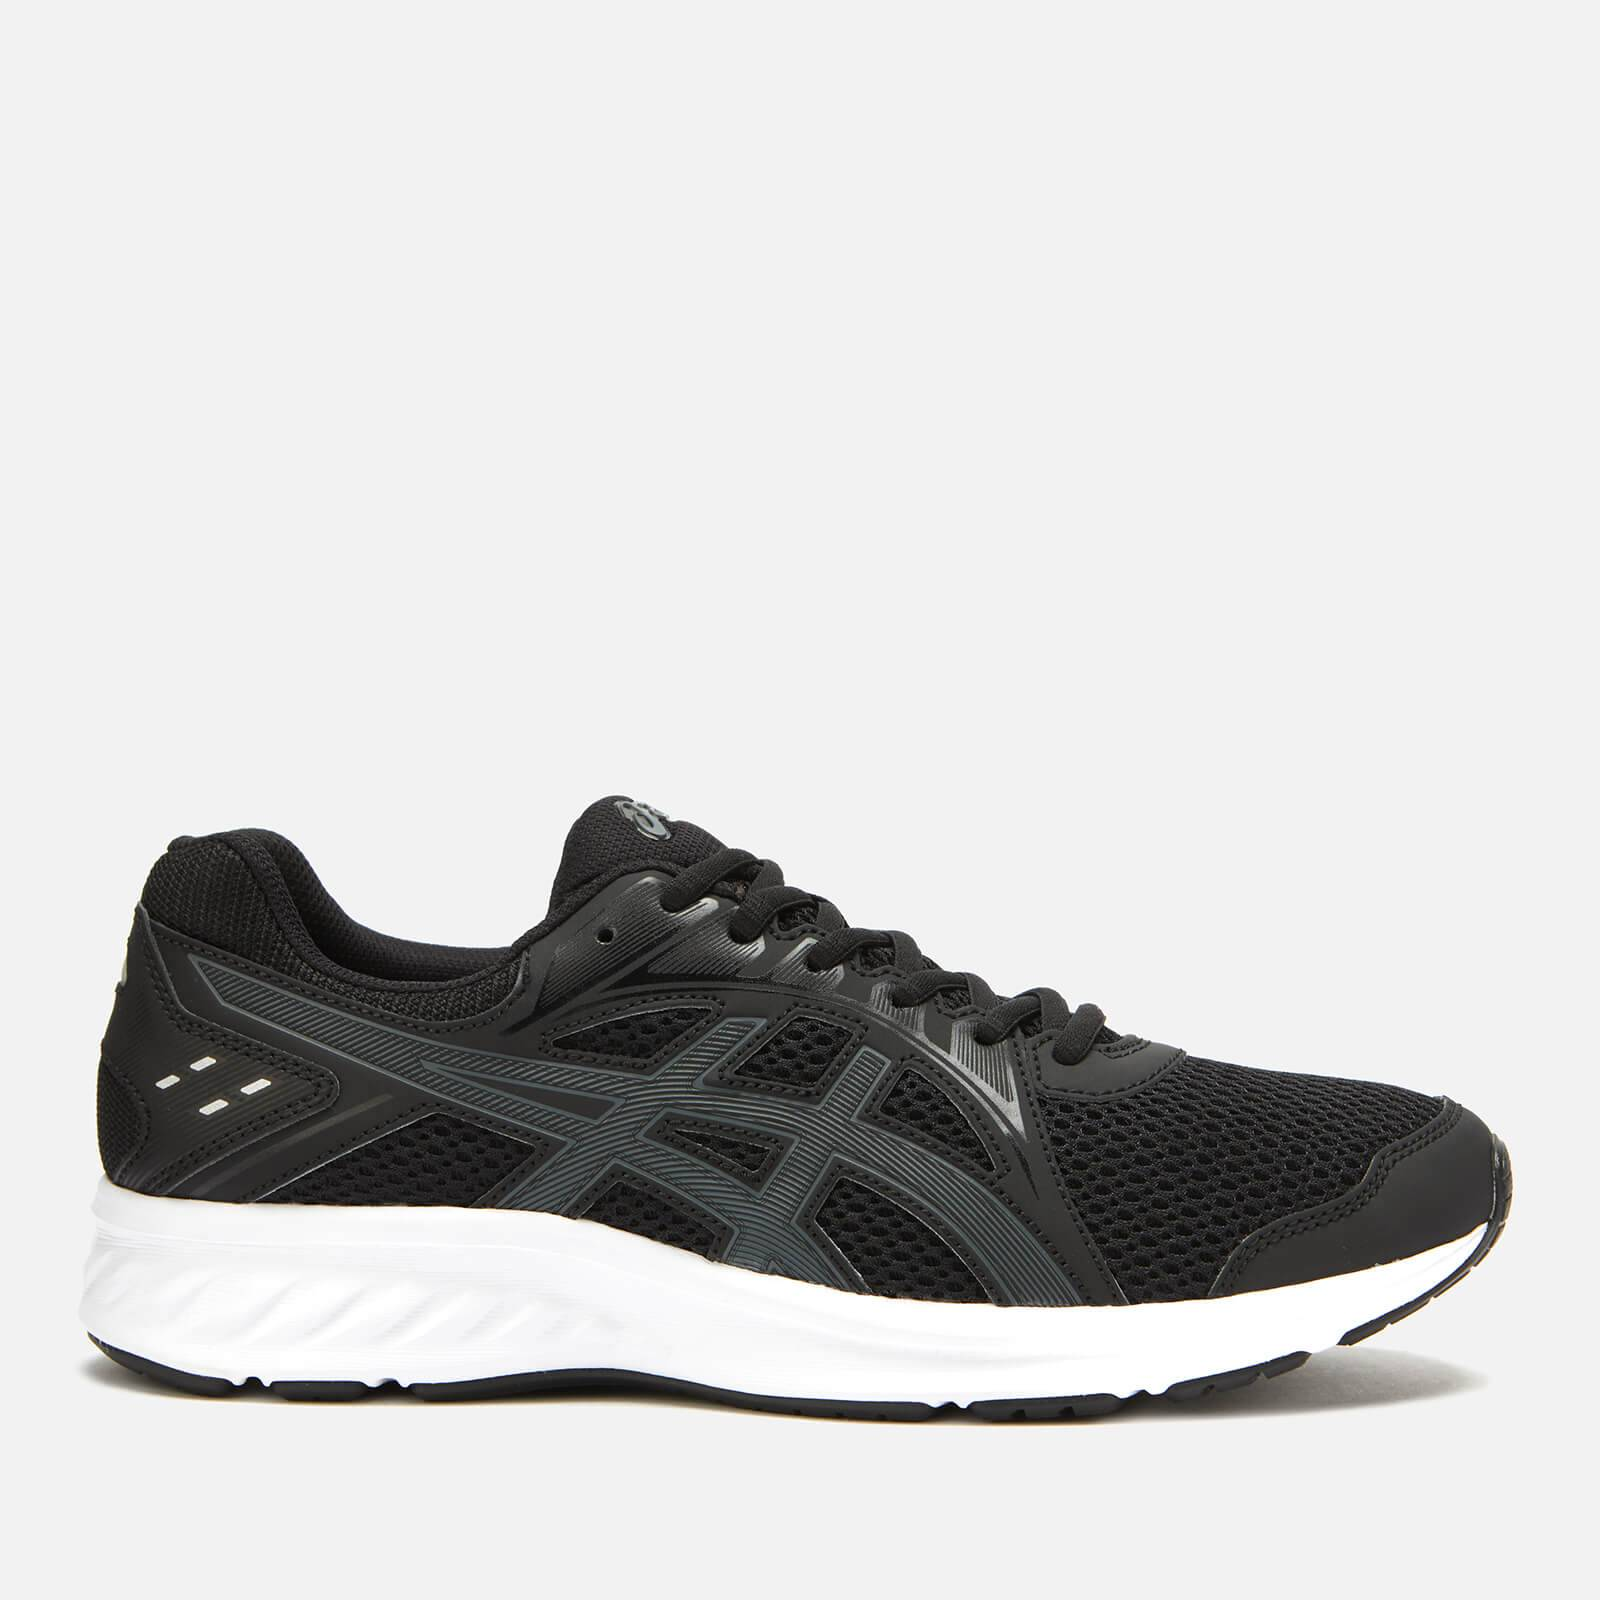 Asics Men's Running Jolt 2 Trainers - Black/Steel Grey - UK 8 - Black